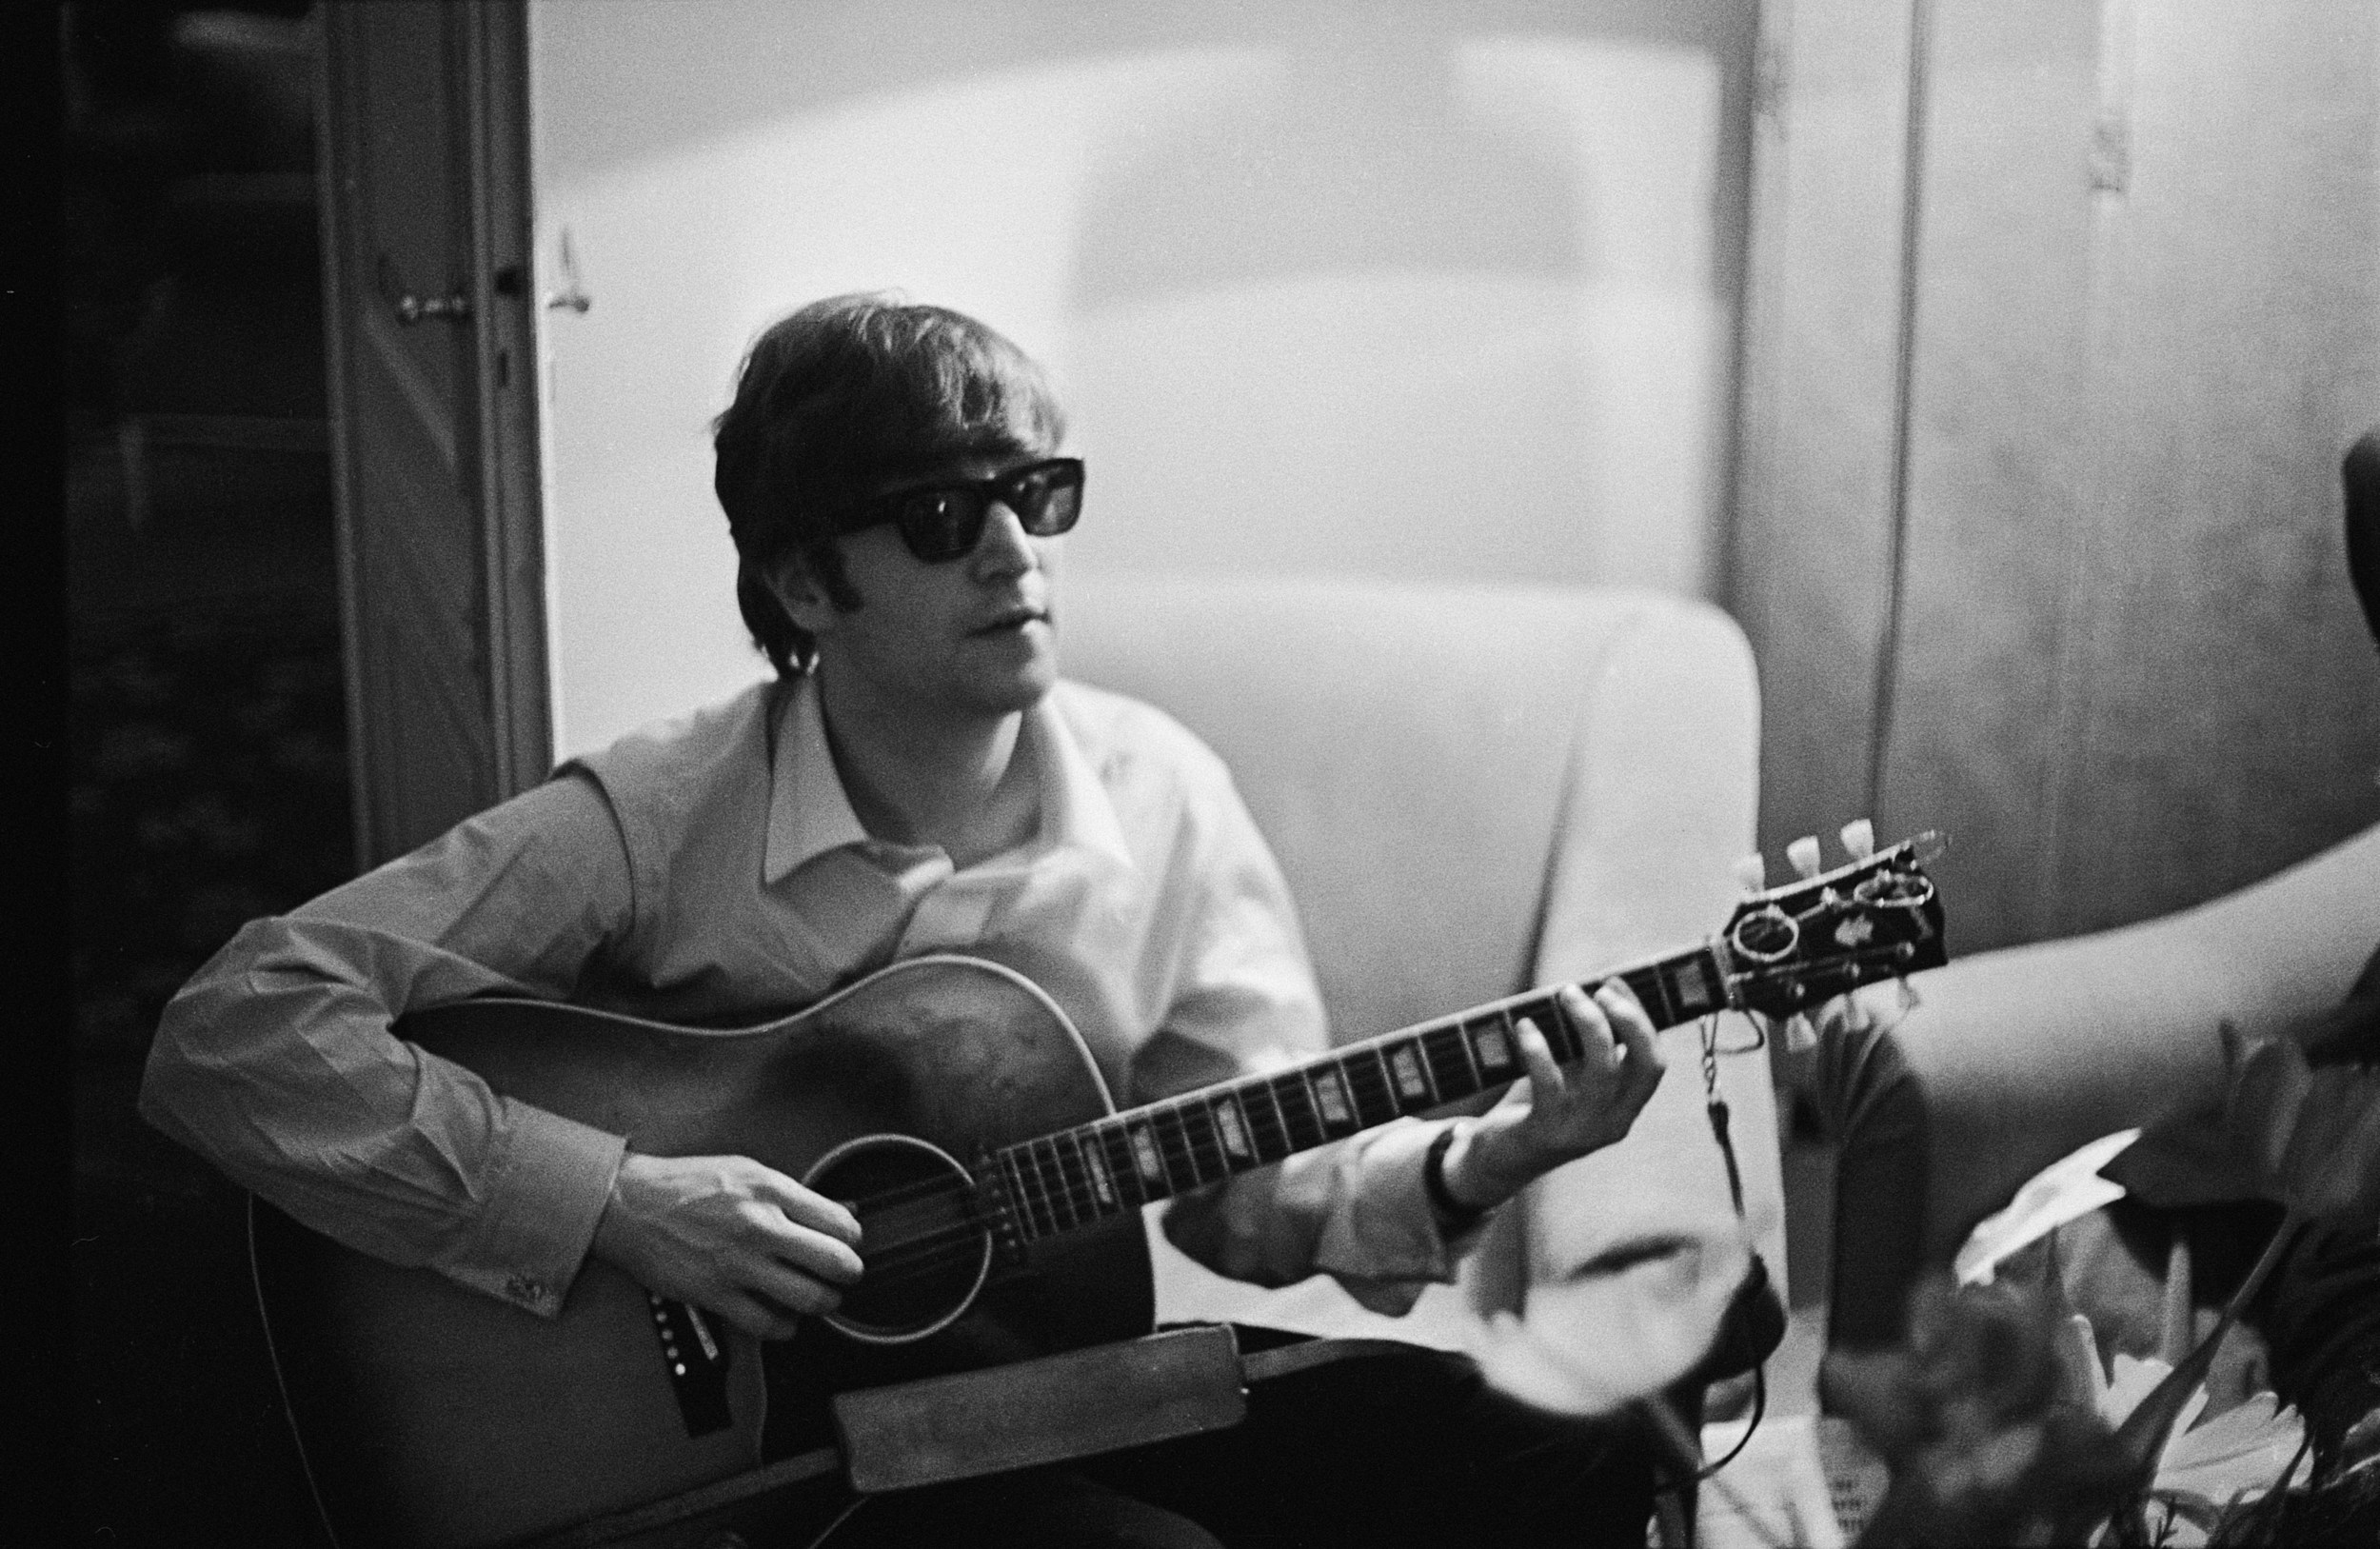 John Lennon S Guitar Sells For 2 4 Million At Auction